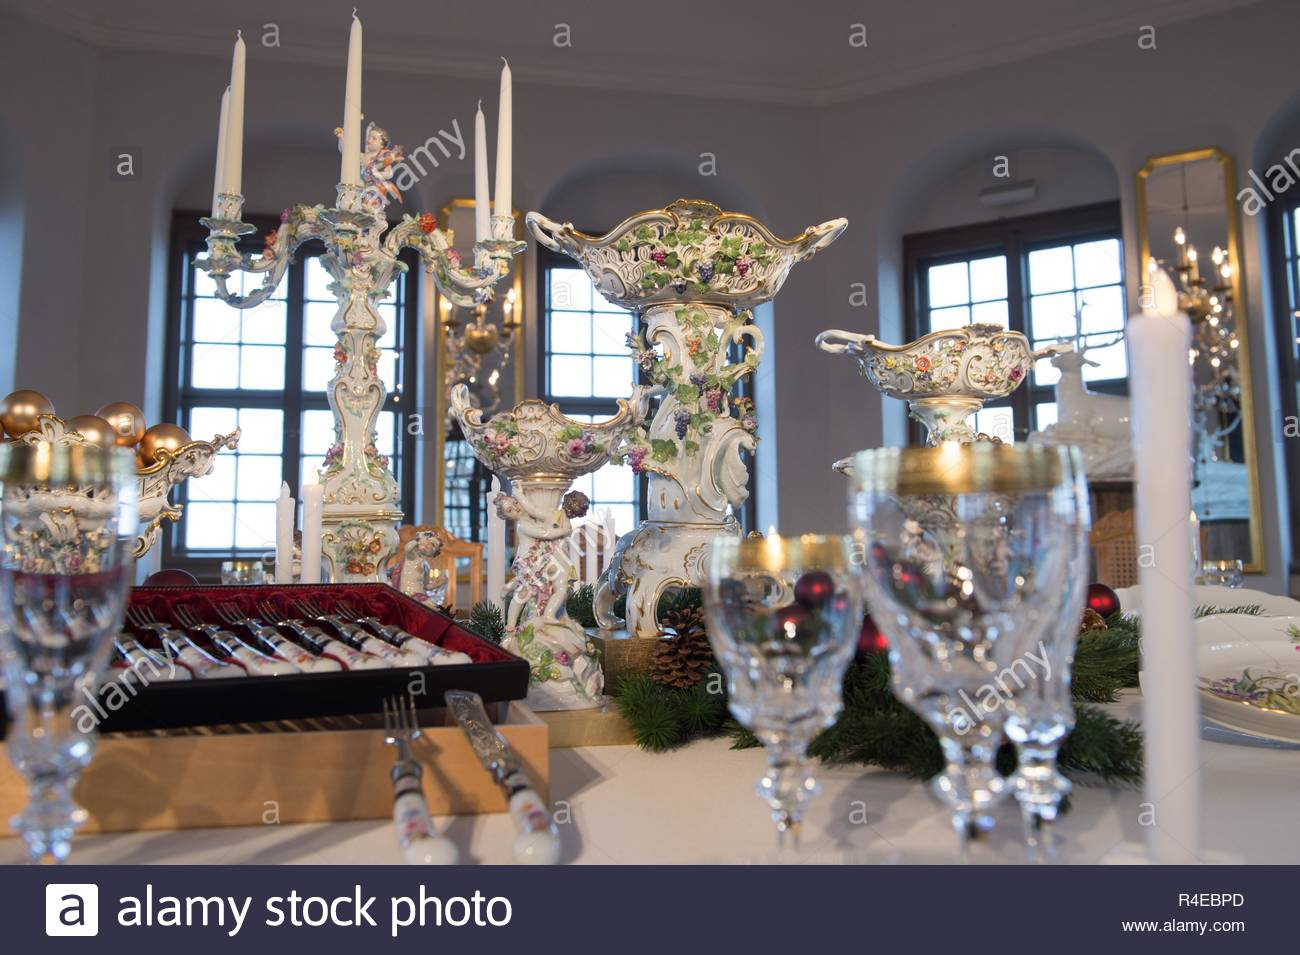 27 november 2018 saxony knigstein a sumptuous arrangement of original 18th century centrepieces from the state porcelain manufactory meissen stands on a table in the friedrichsburg fortress knigstein the setting in the baroque pleasure palace can be seen during the 23rd historical romantic christmas market on all four advent weekends photo sebastian kahnertdpa zentralbilddpa R4EBPD